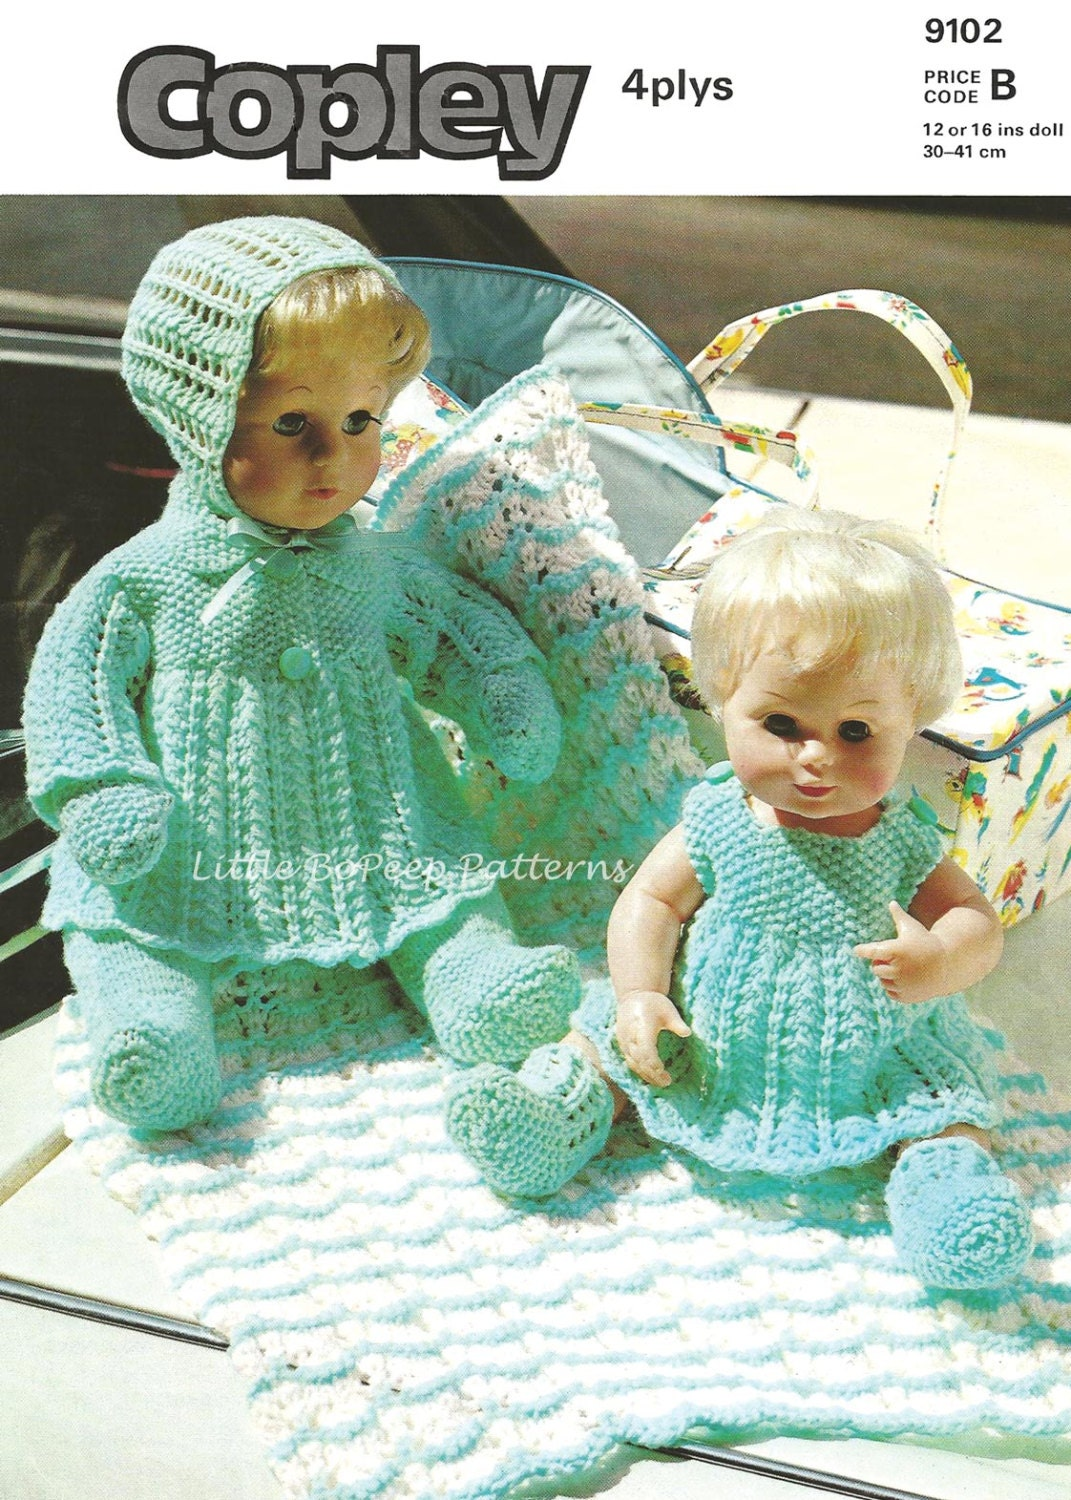 Vintage Knitting Patterns Dolls Clothes : Vintage knitting pattern for 12 inch Doll clothes DOWNLOAD